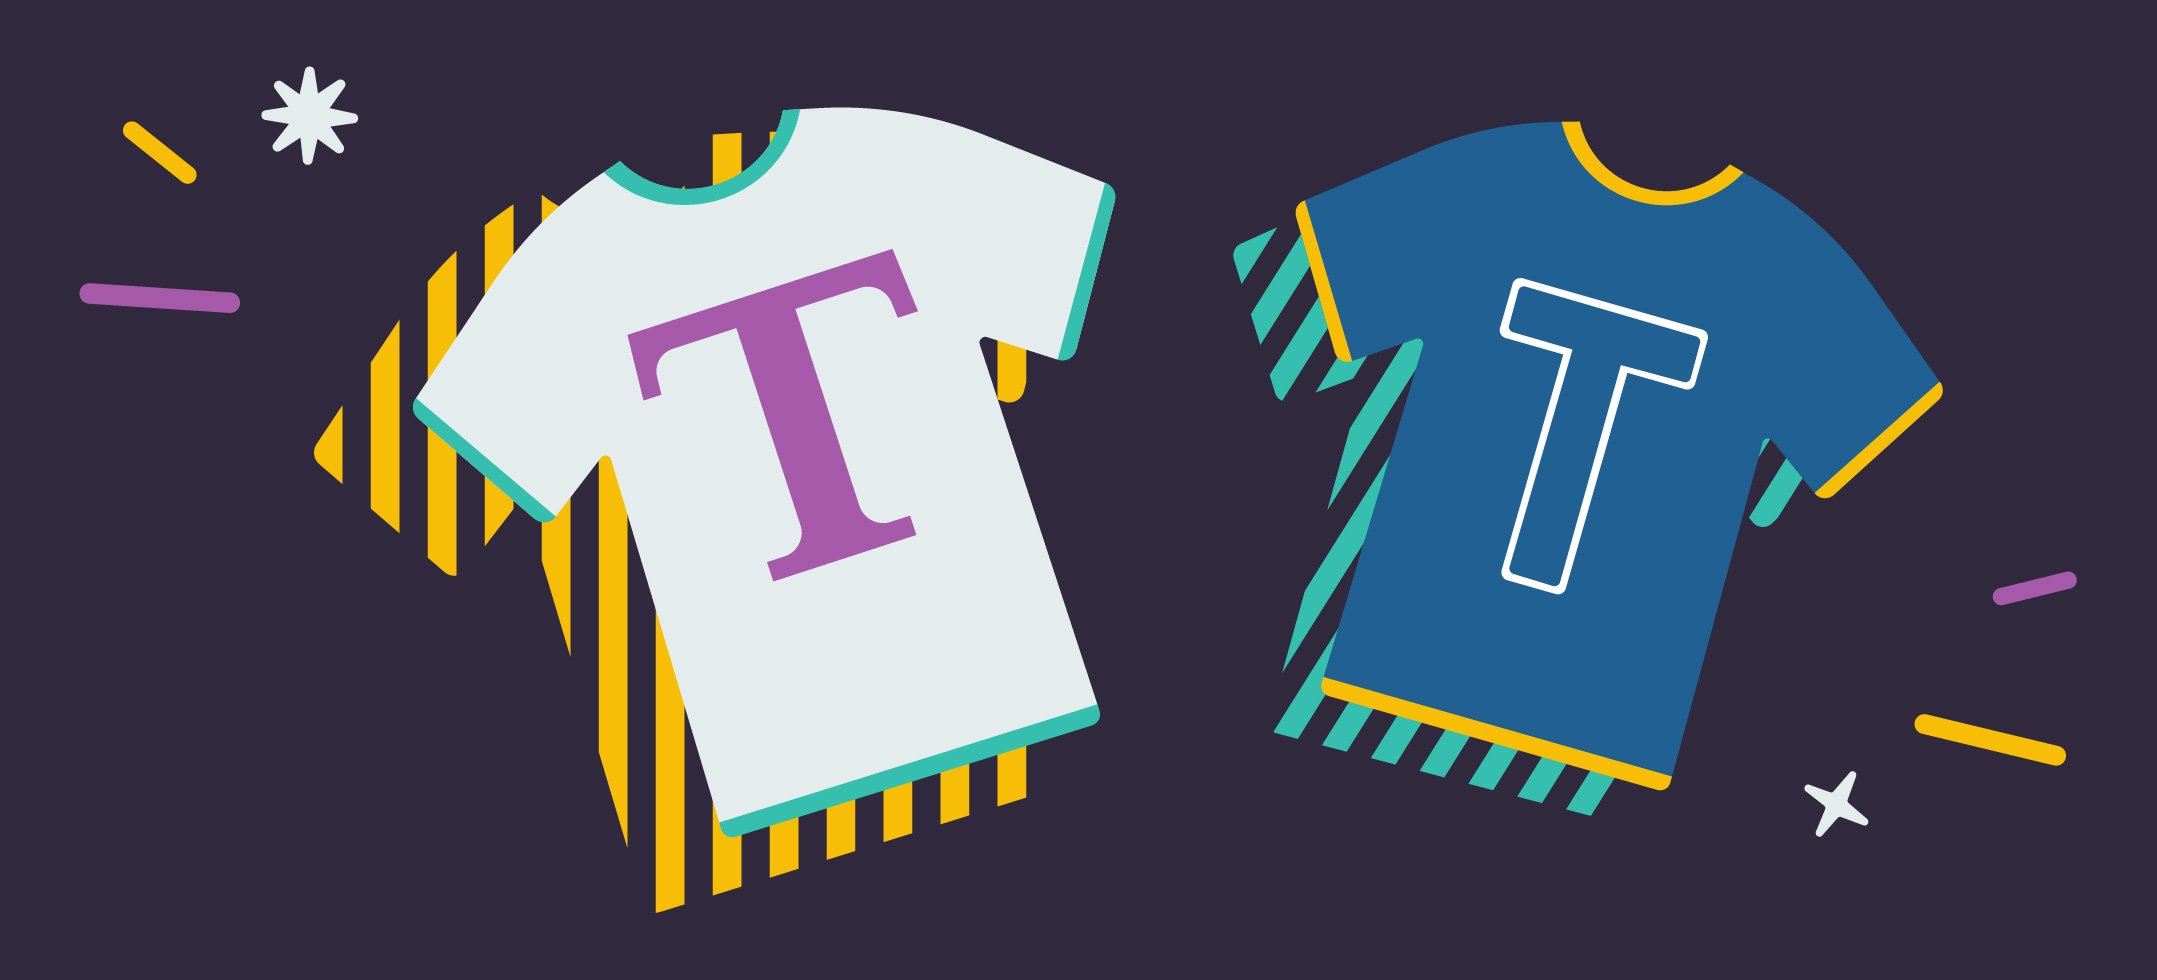 How to Choose the Best Fonts for T-Shirt Designs